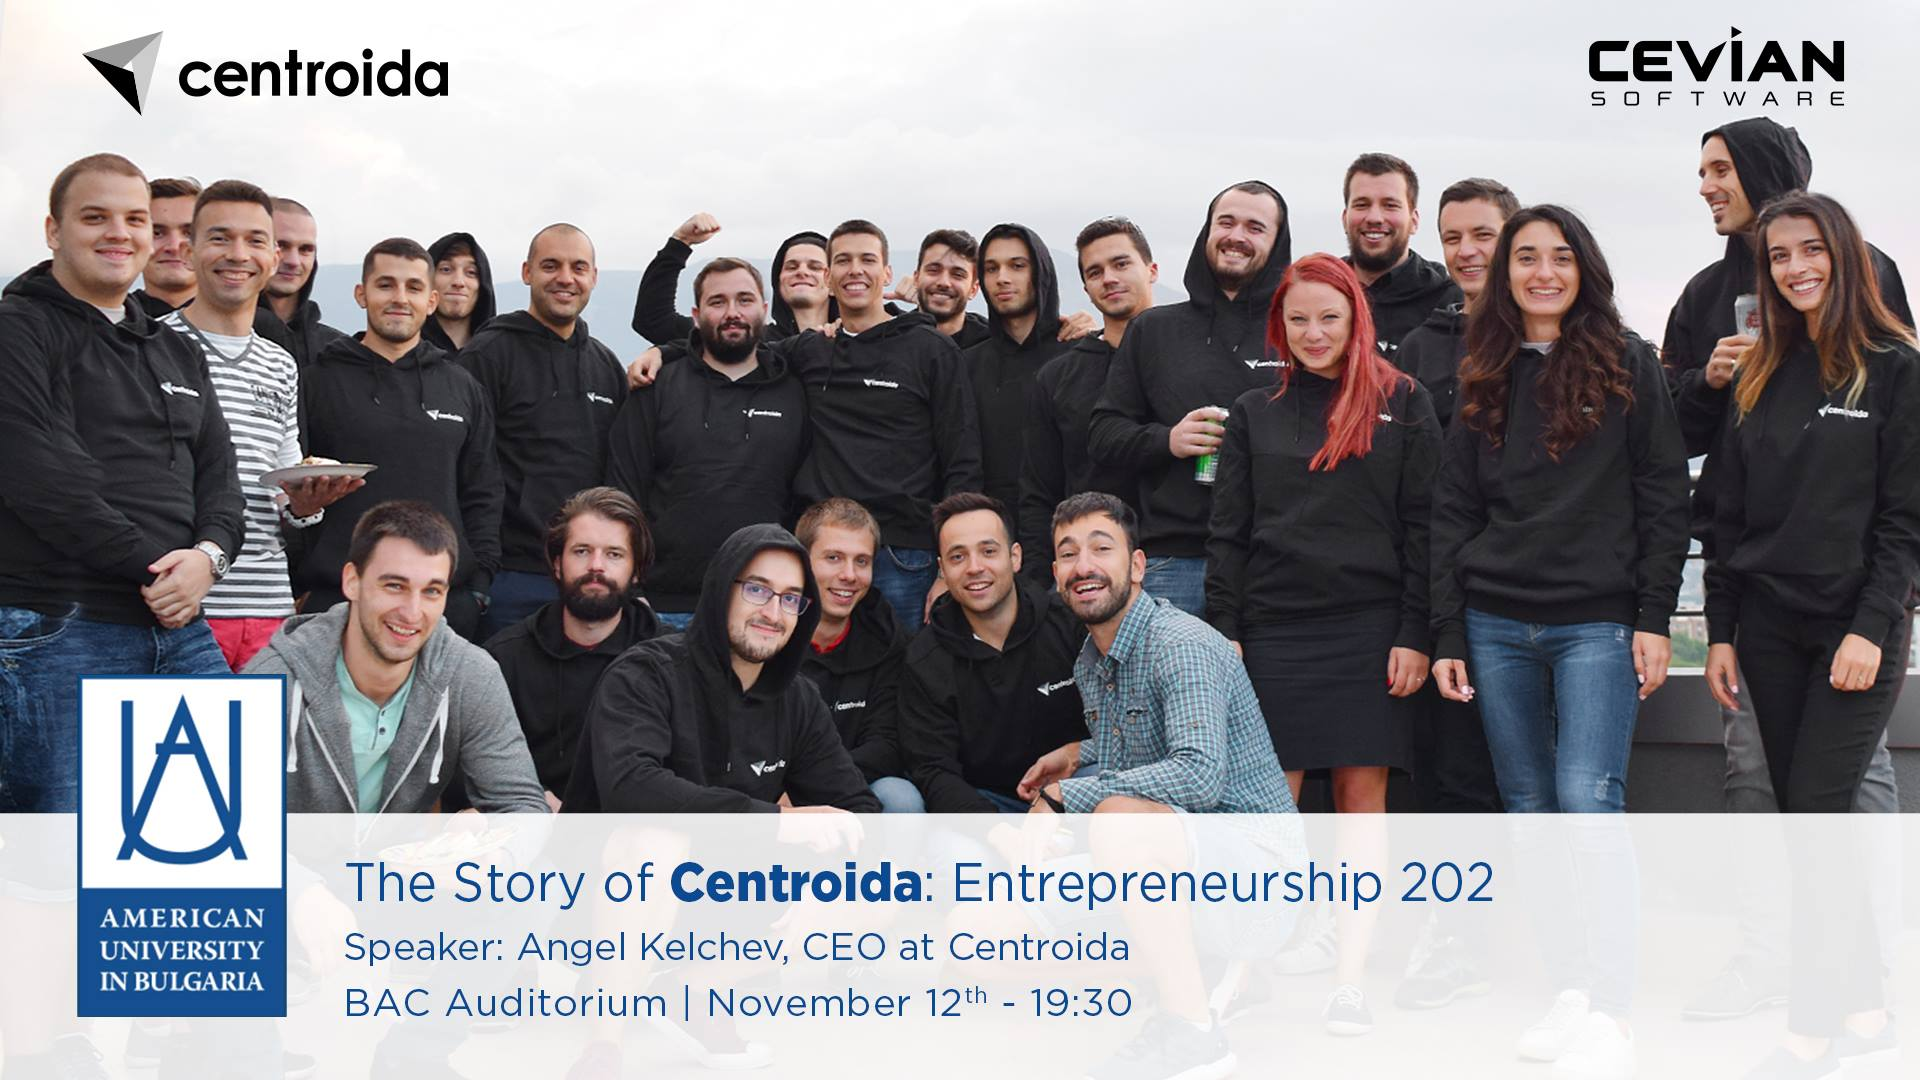 The Story of Centroida: Entrepreneurship 202